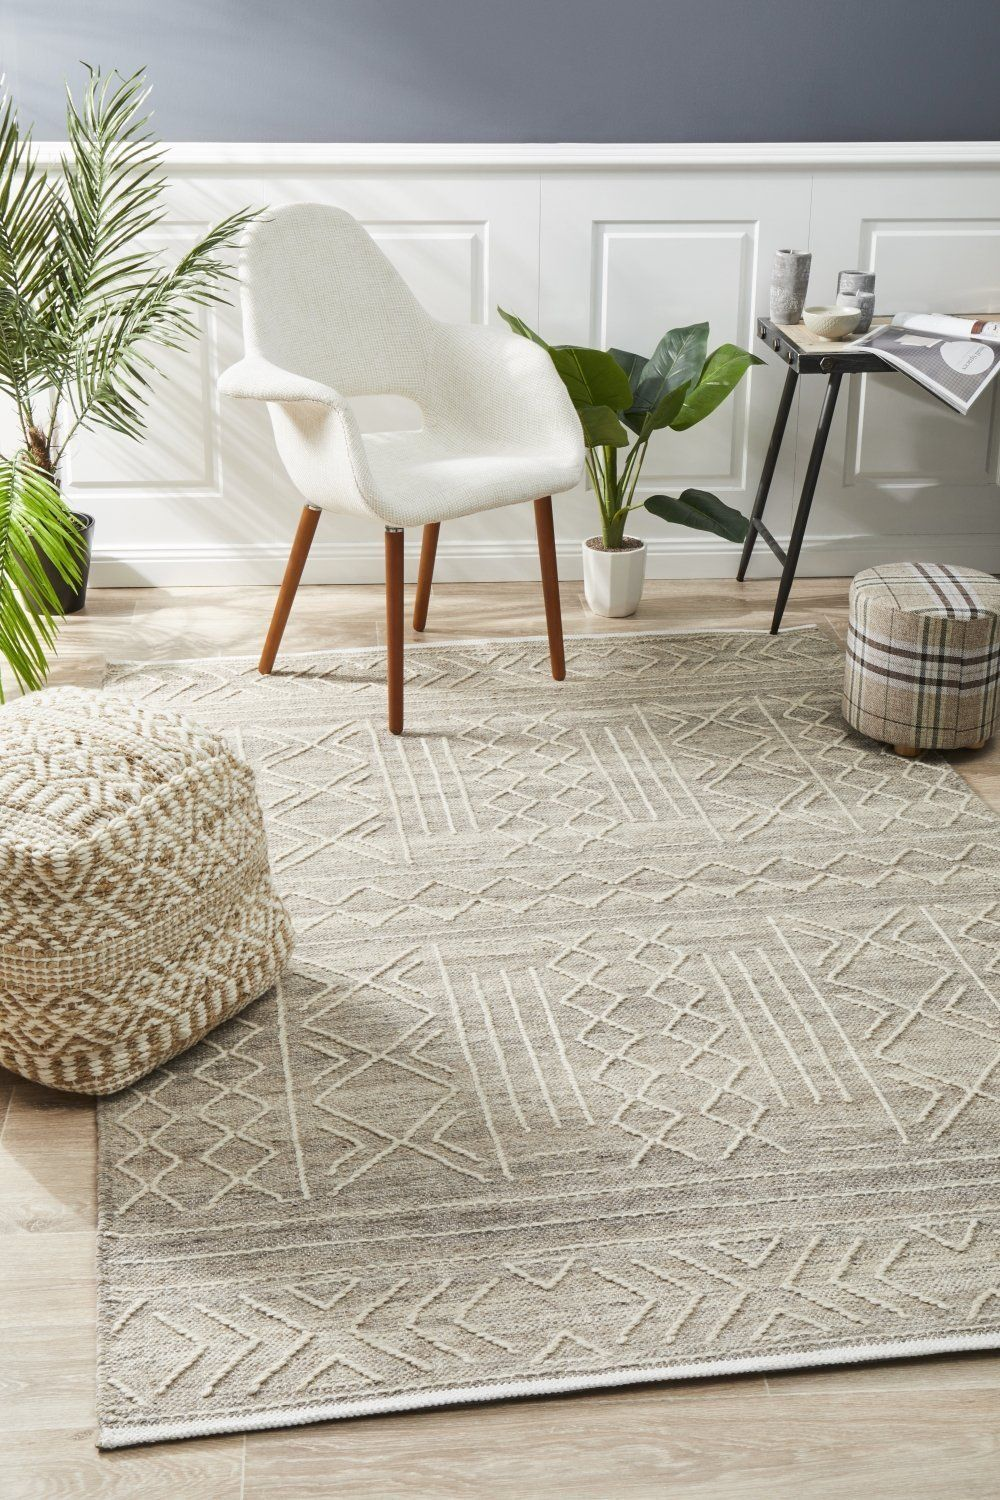 Arya Stitch Woven Rug Natural Haggleco Rugs In Living Room Natural Rug Rugs Australia